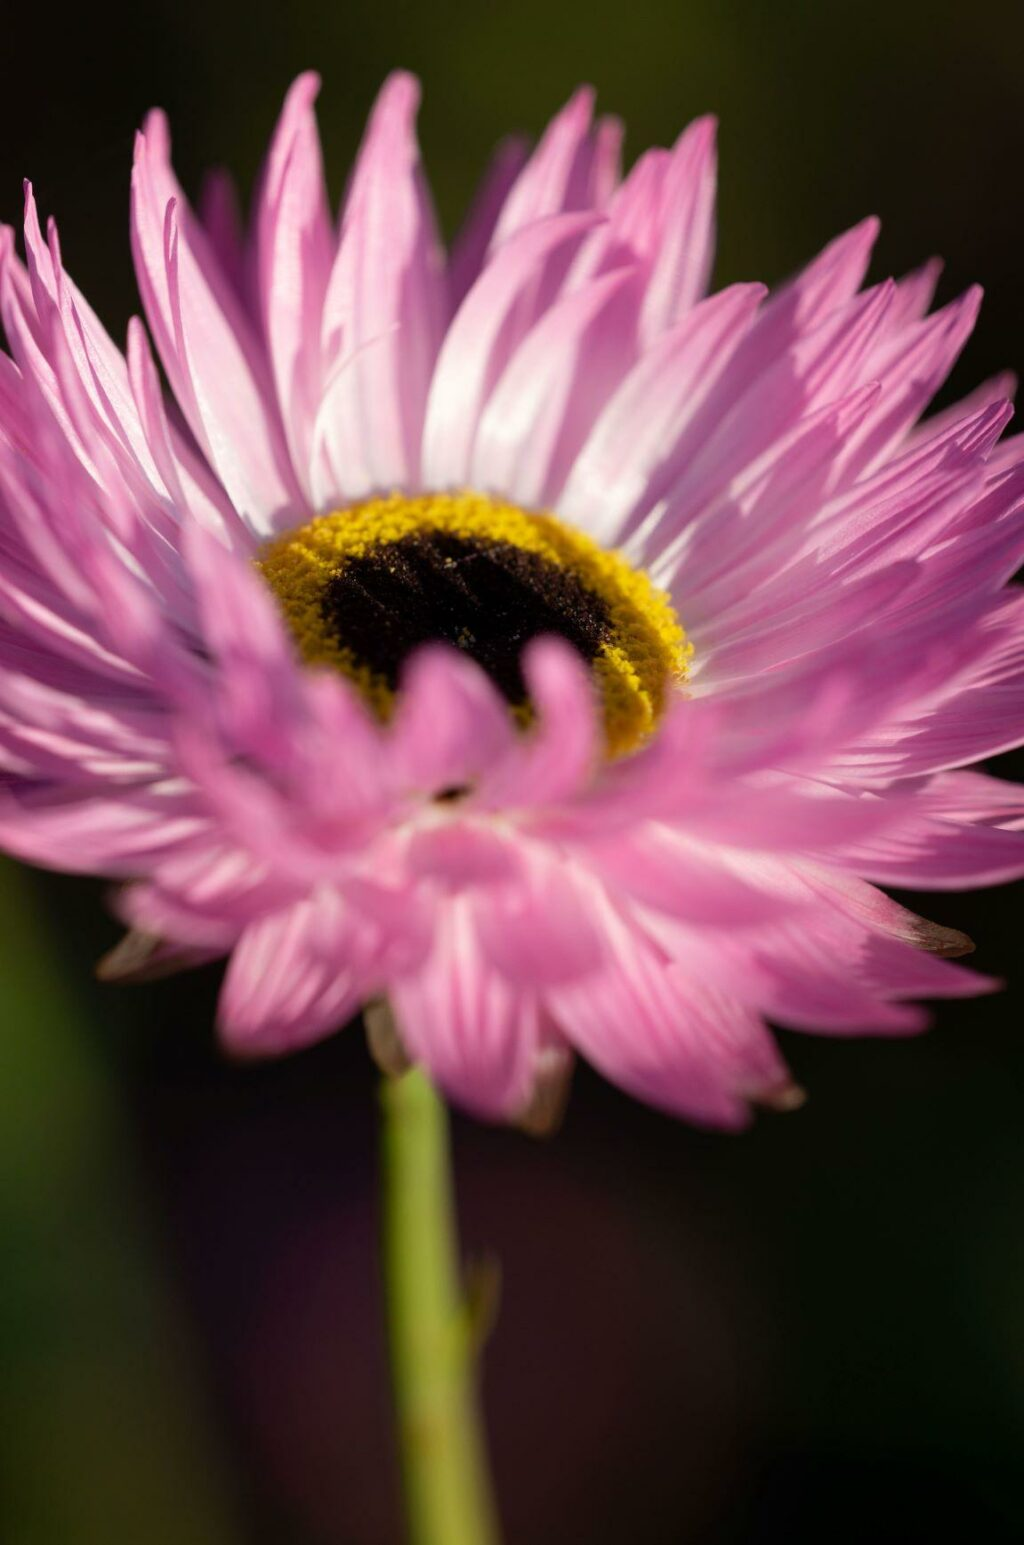 Gordon Castle grows pink daisy like acroclinium as a cut flower to use both fresh and dried.